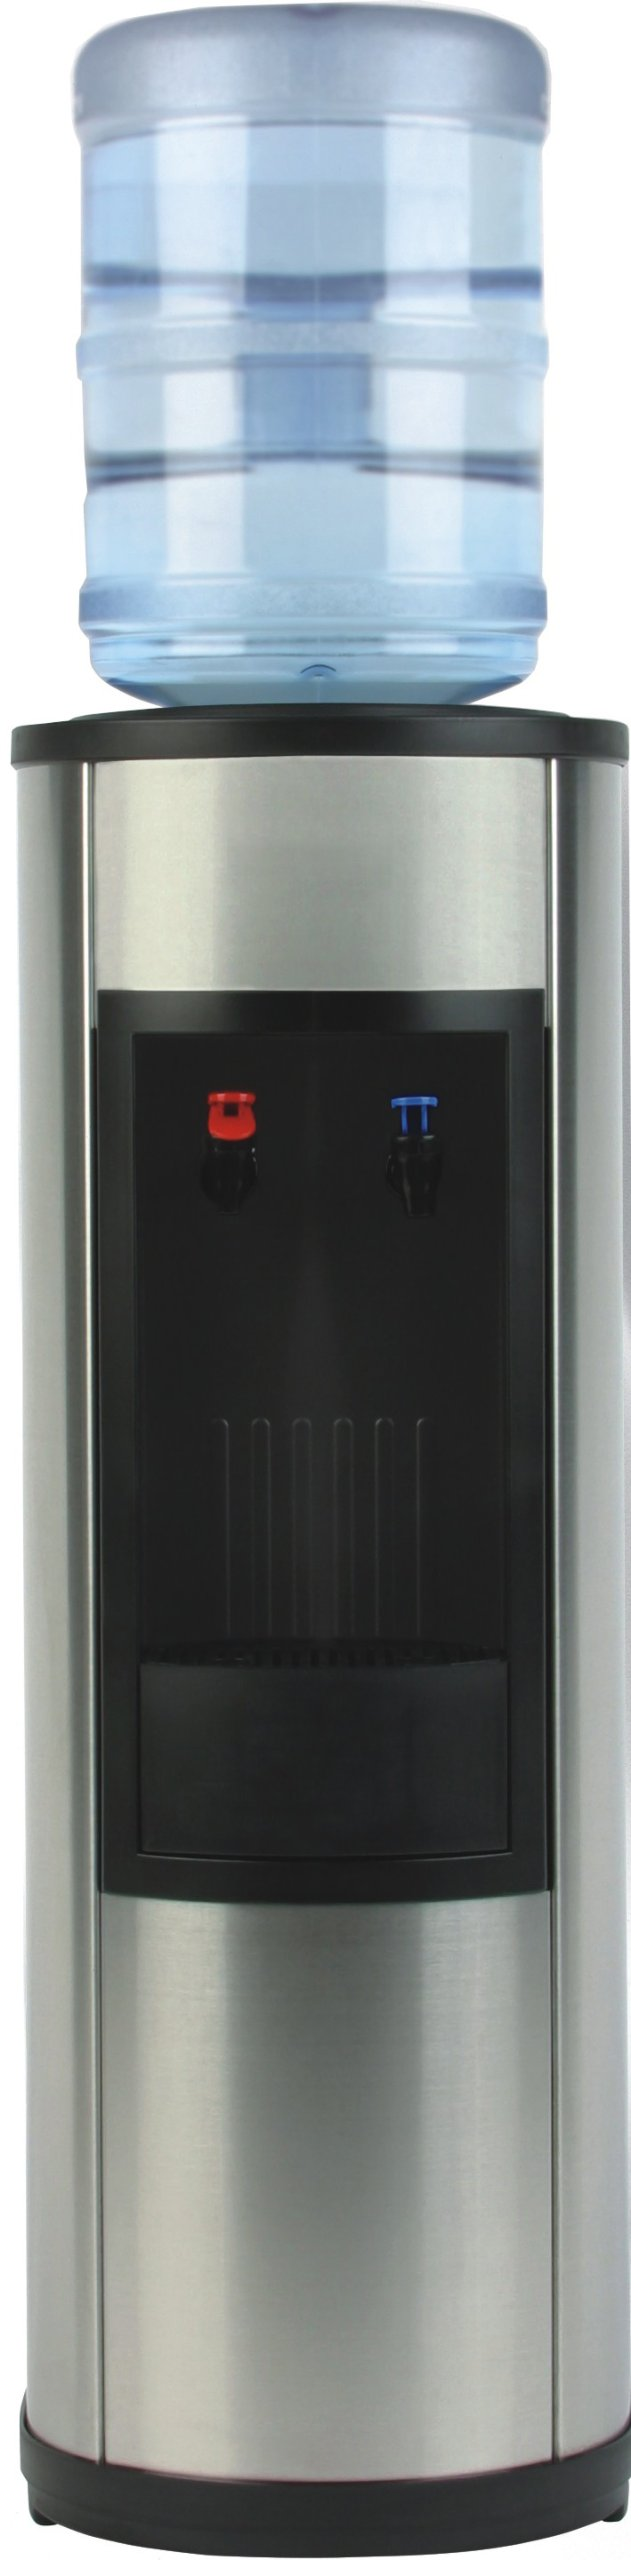 Igloo MWC519 Stainless Steel Water Cooler Dispenser, Hot/Cold